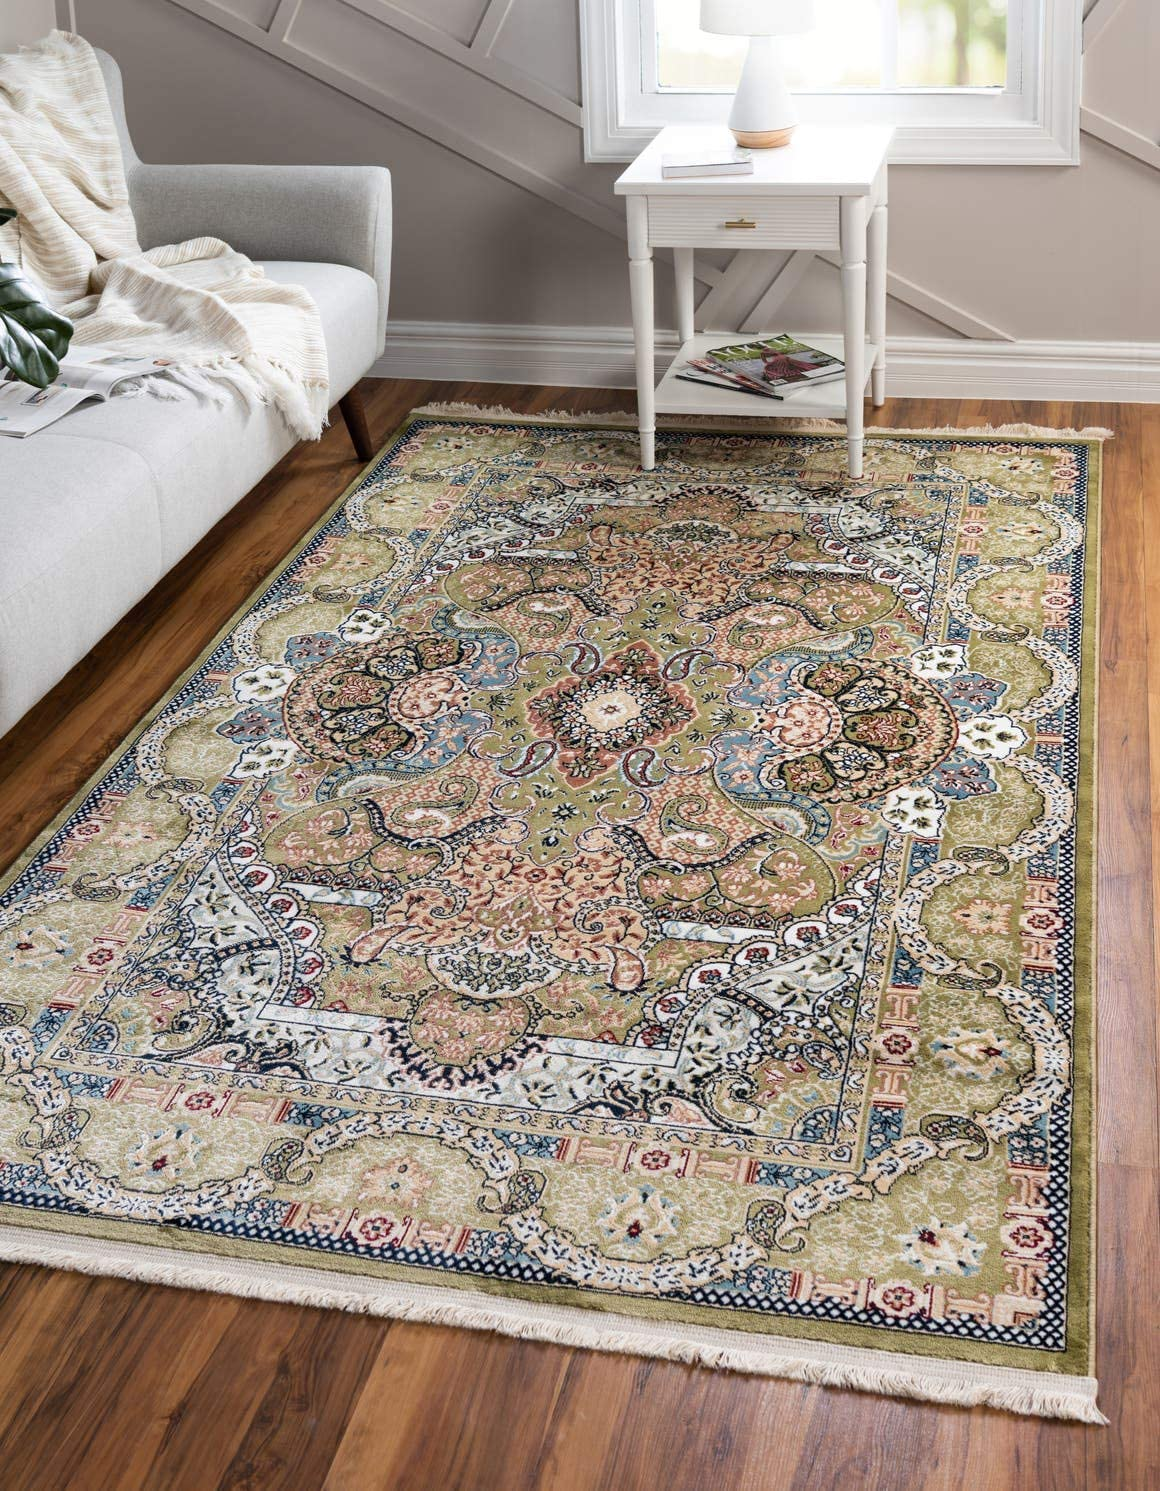 Unique Loom Narenj Collection Classic Traditional Medallion Textured Green Area Rug 3 0 x 5 0